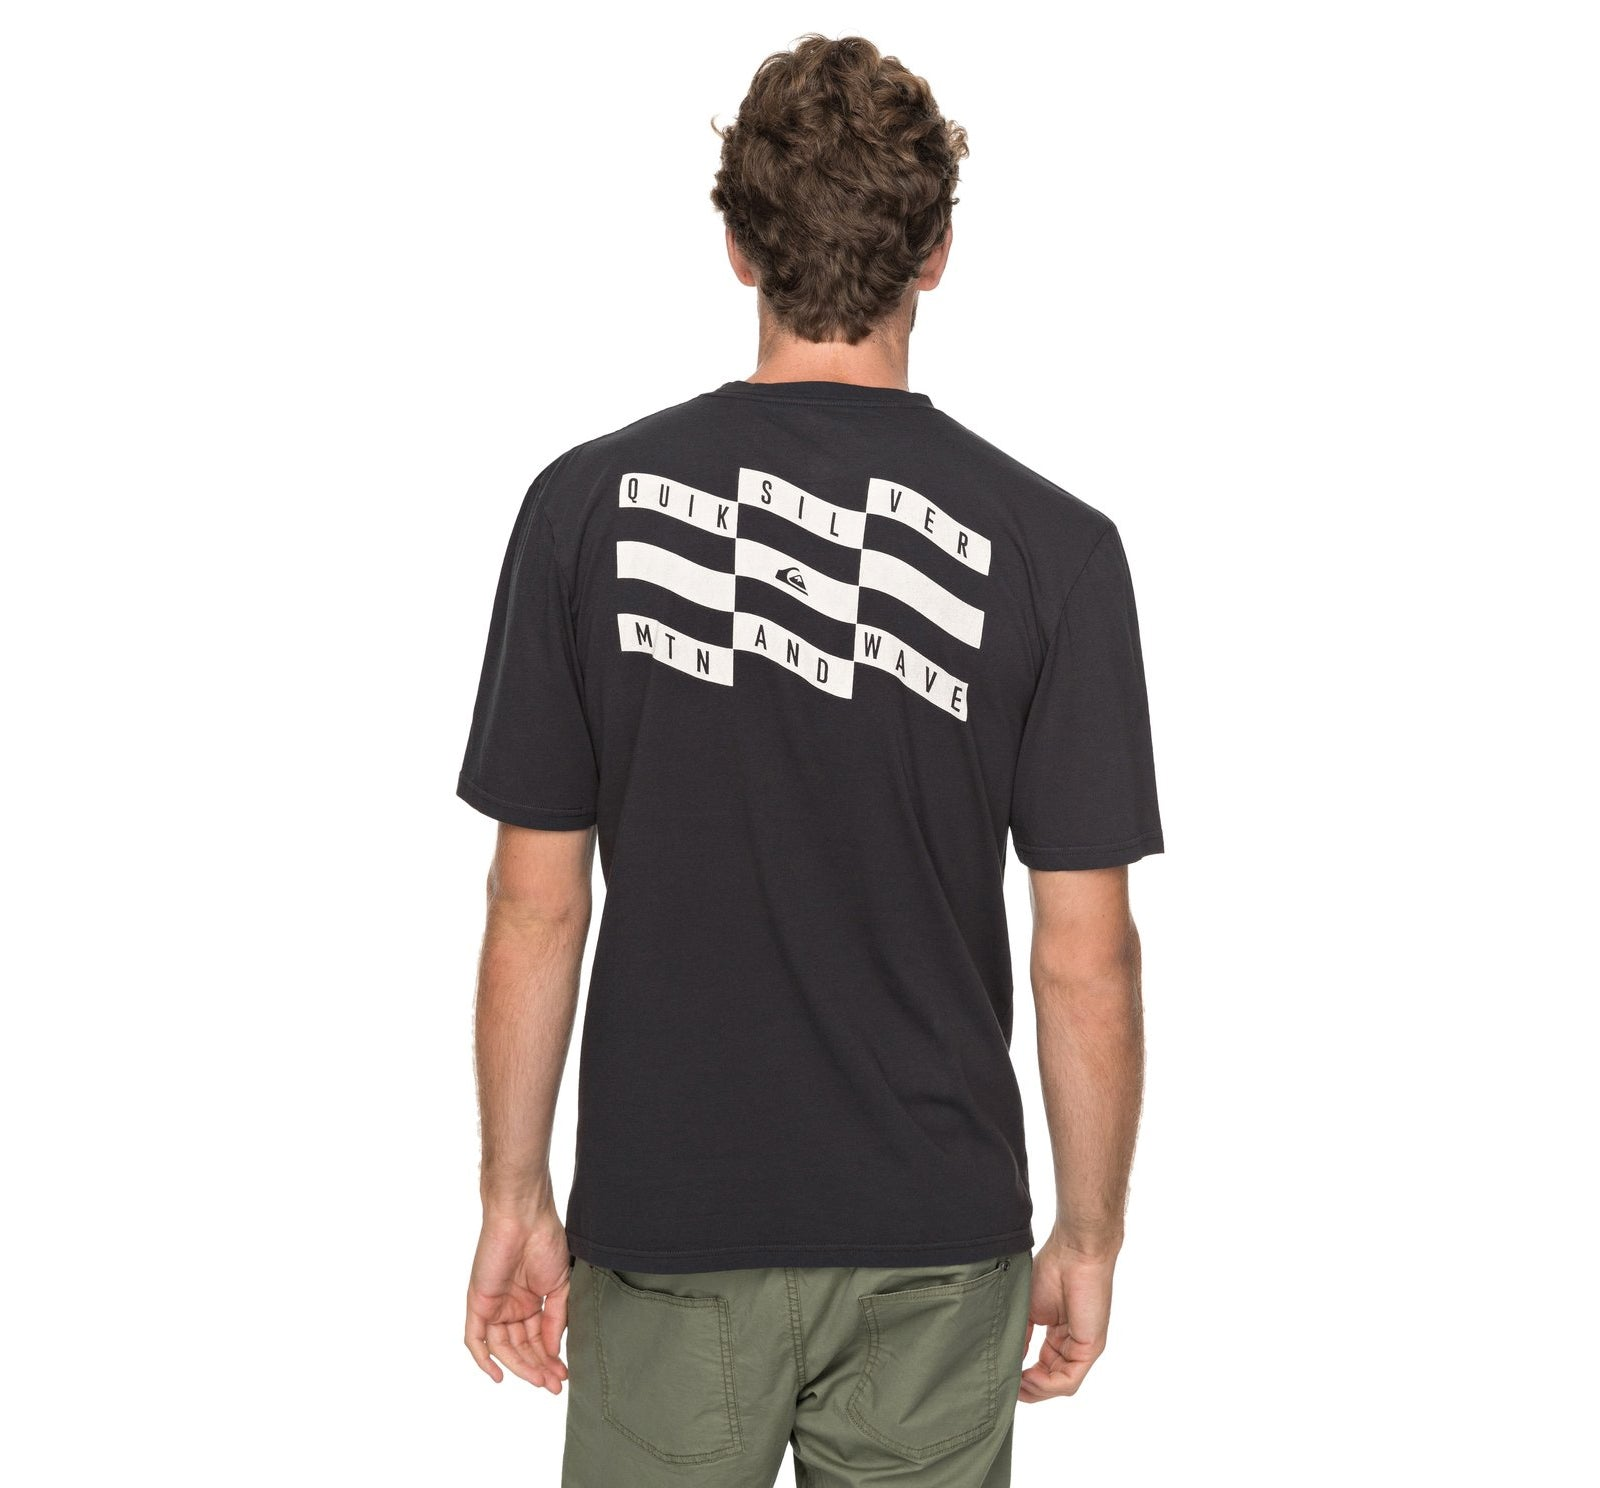 Quiksilver Bad Tuners Men's S/S Pocket Tee